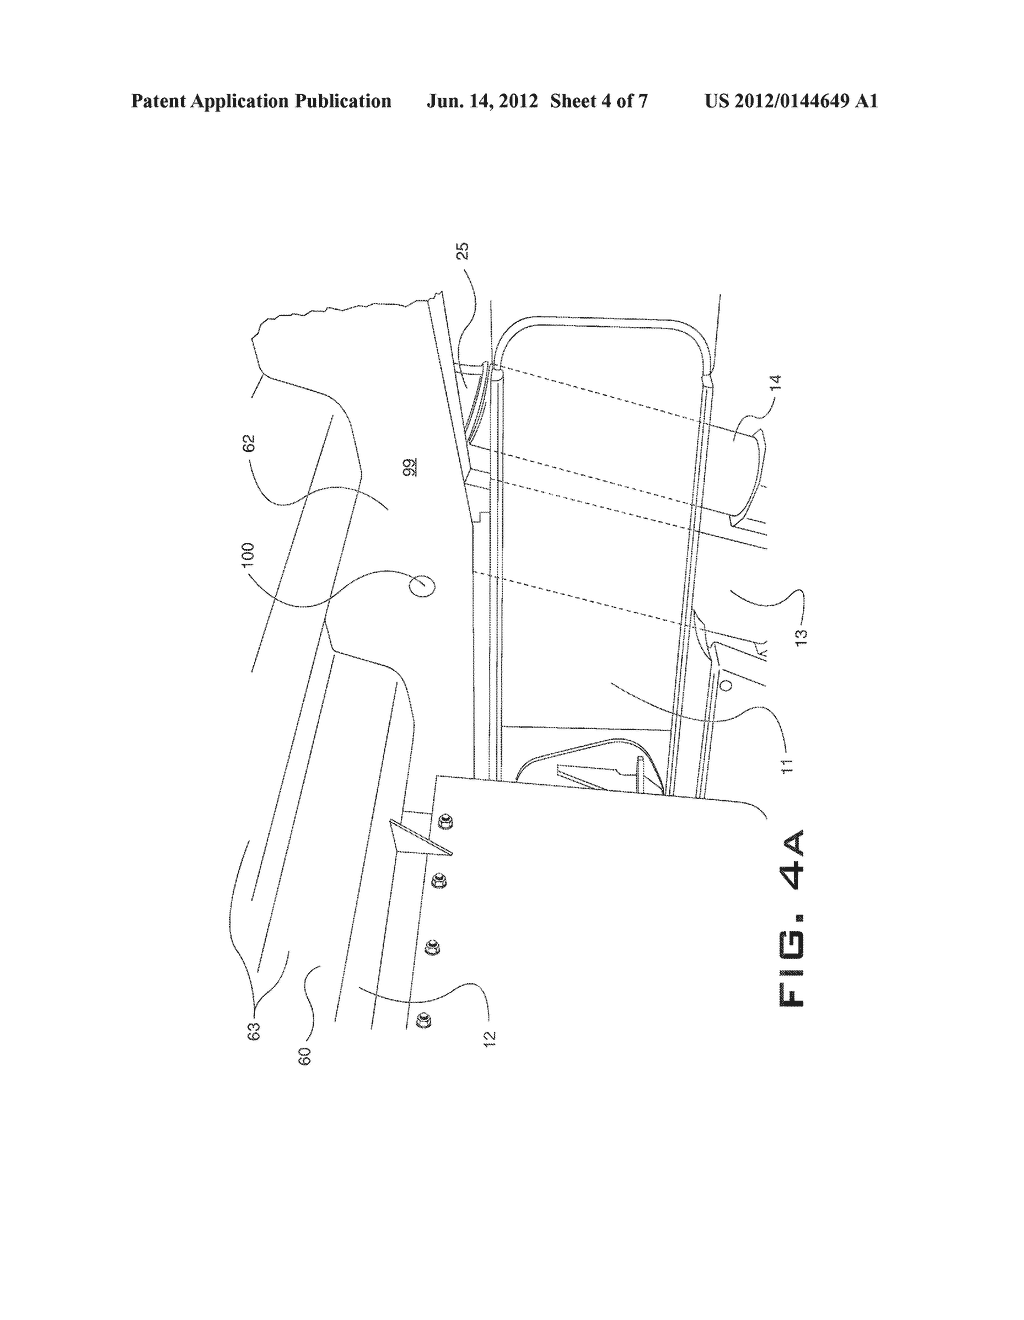 Pin Installation Assembly And Associated Machine And Method - diagram, schematic, and image 05